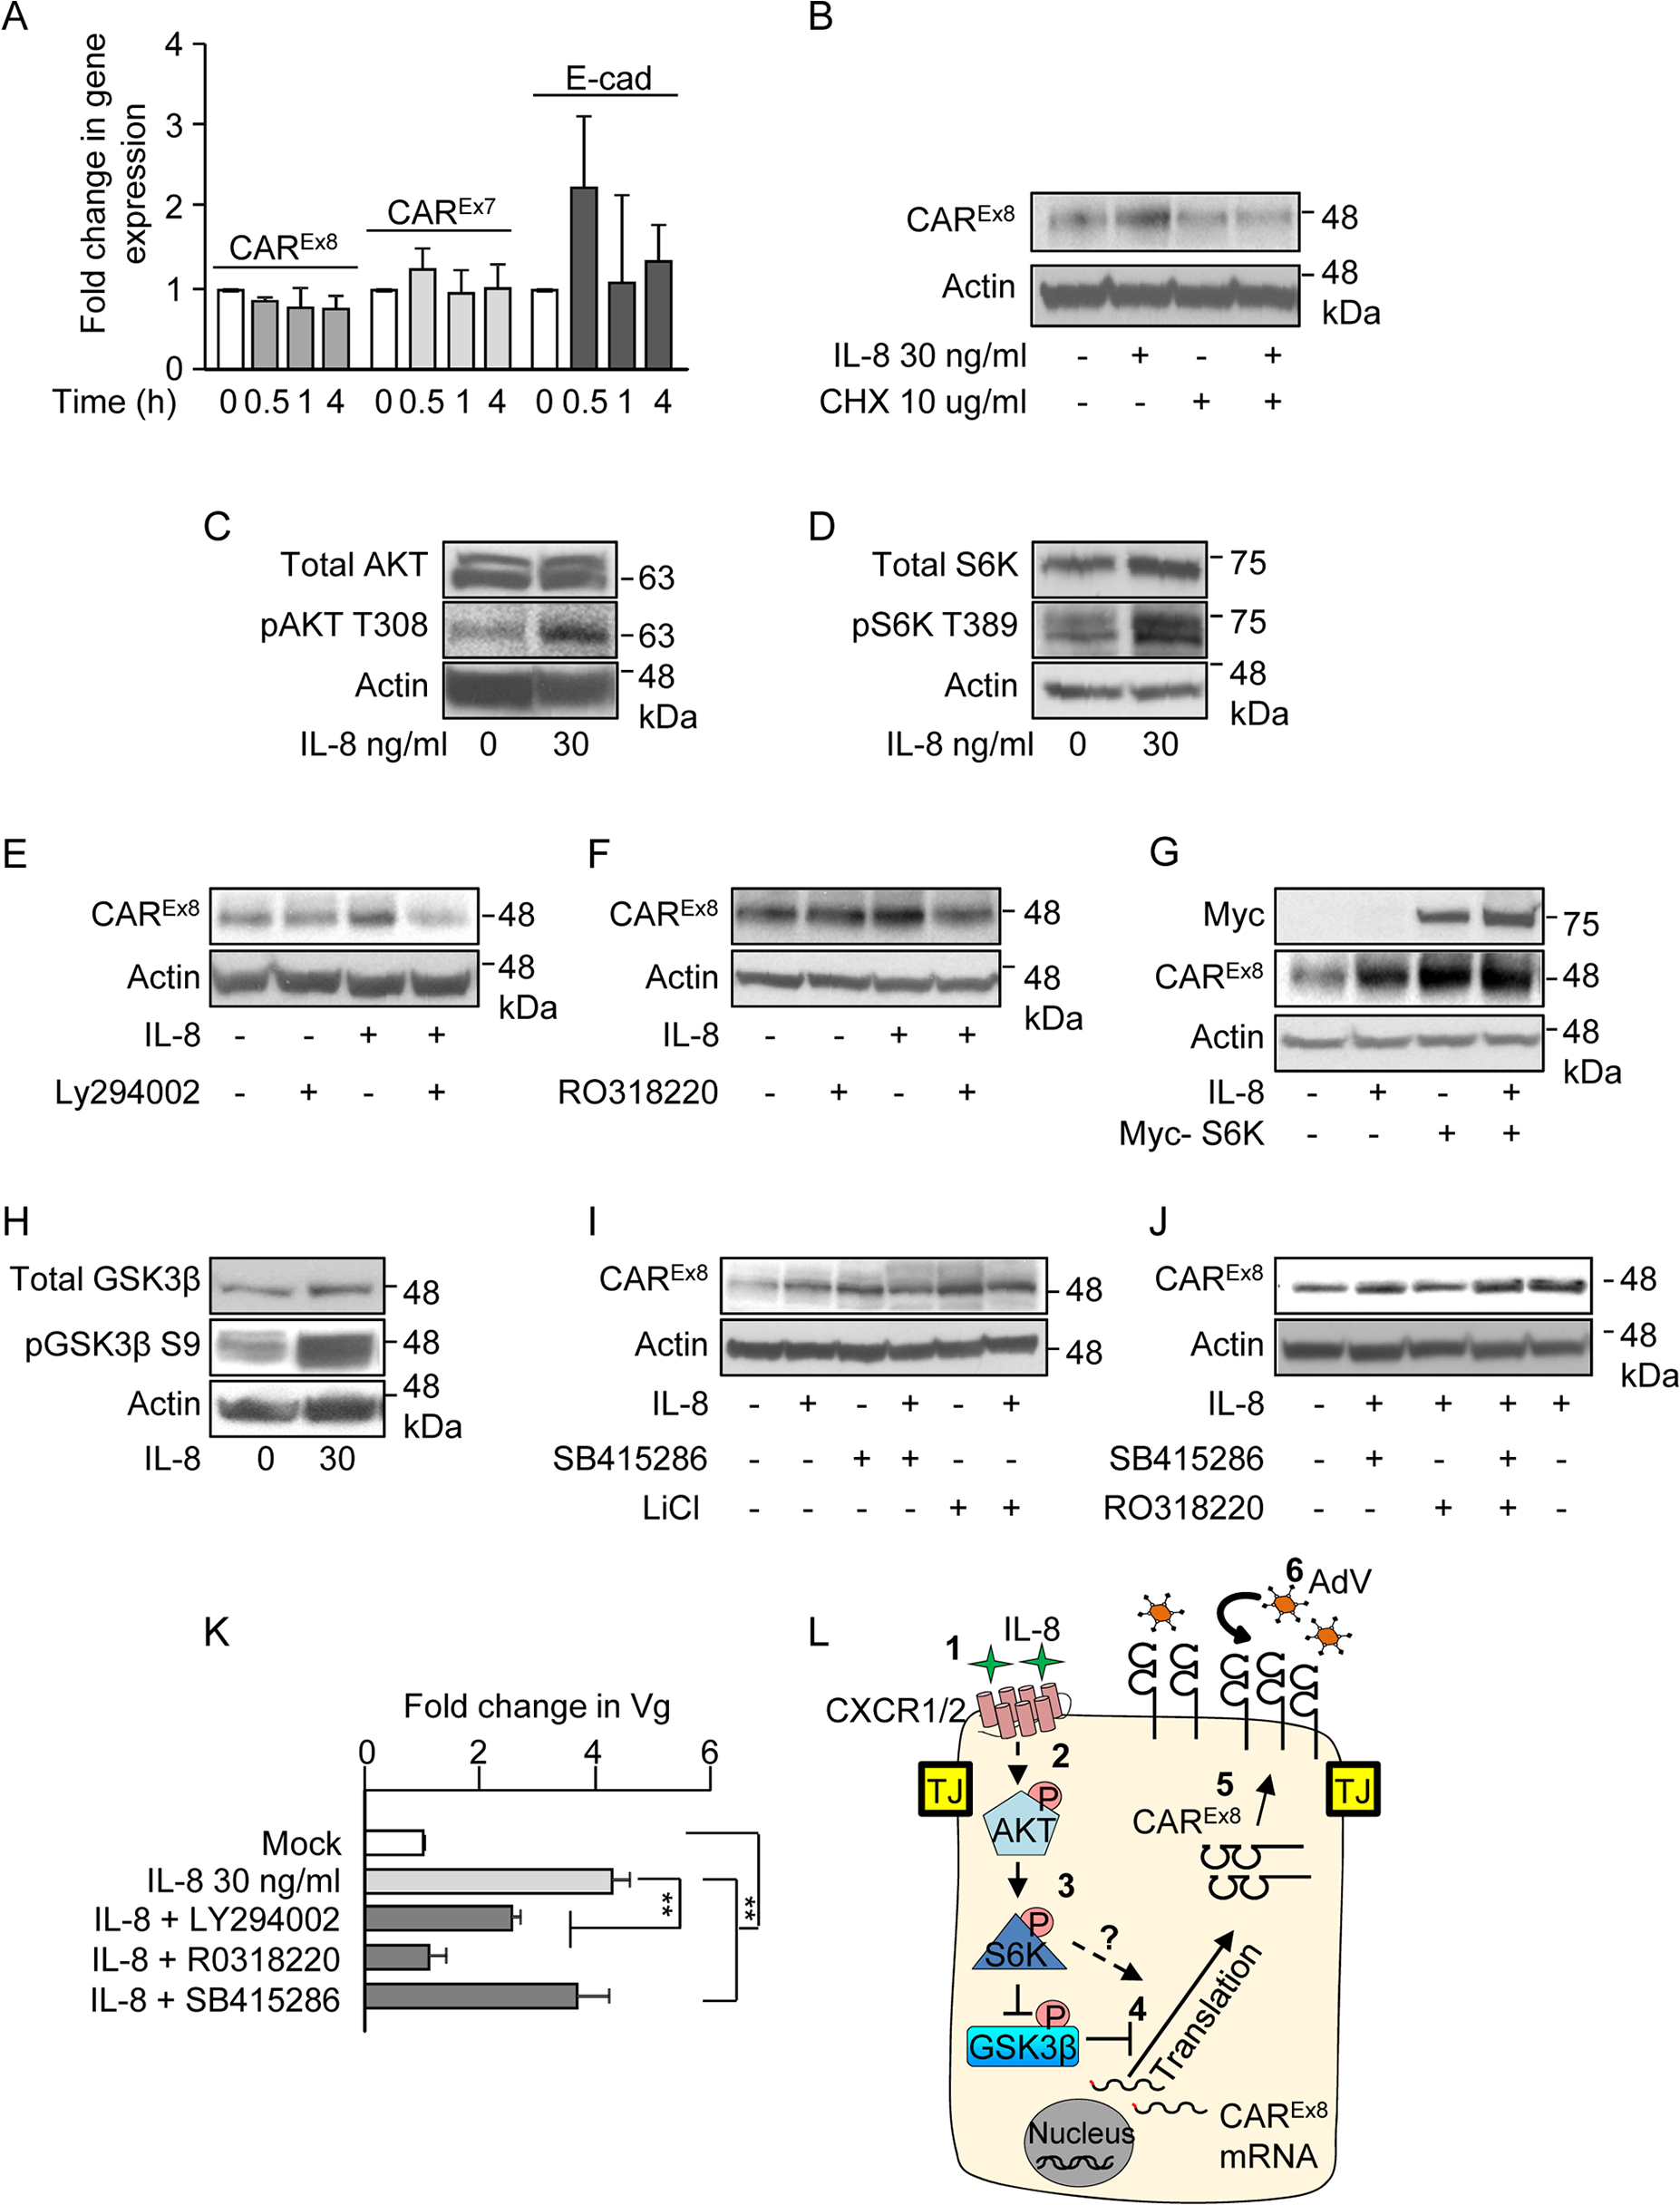 IL-8 activates AKT/S6K and inactivates GSK3β to increase CAR<sup>Ex8</sup> protein synthesis and AdV entry.